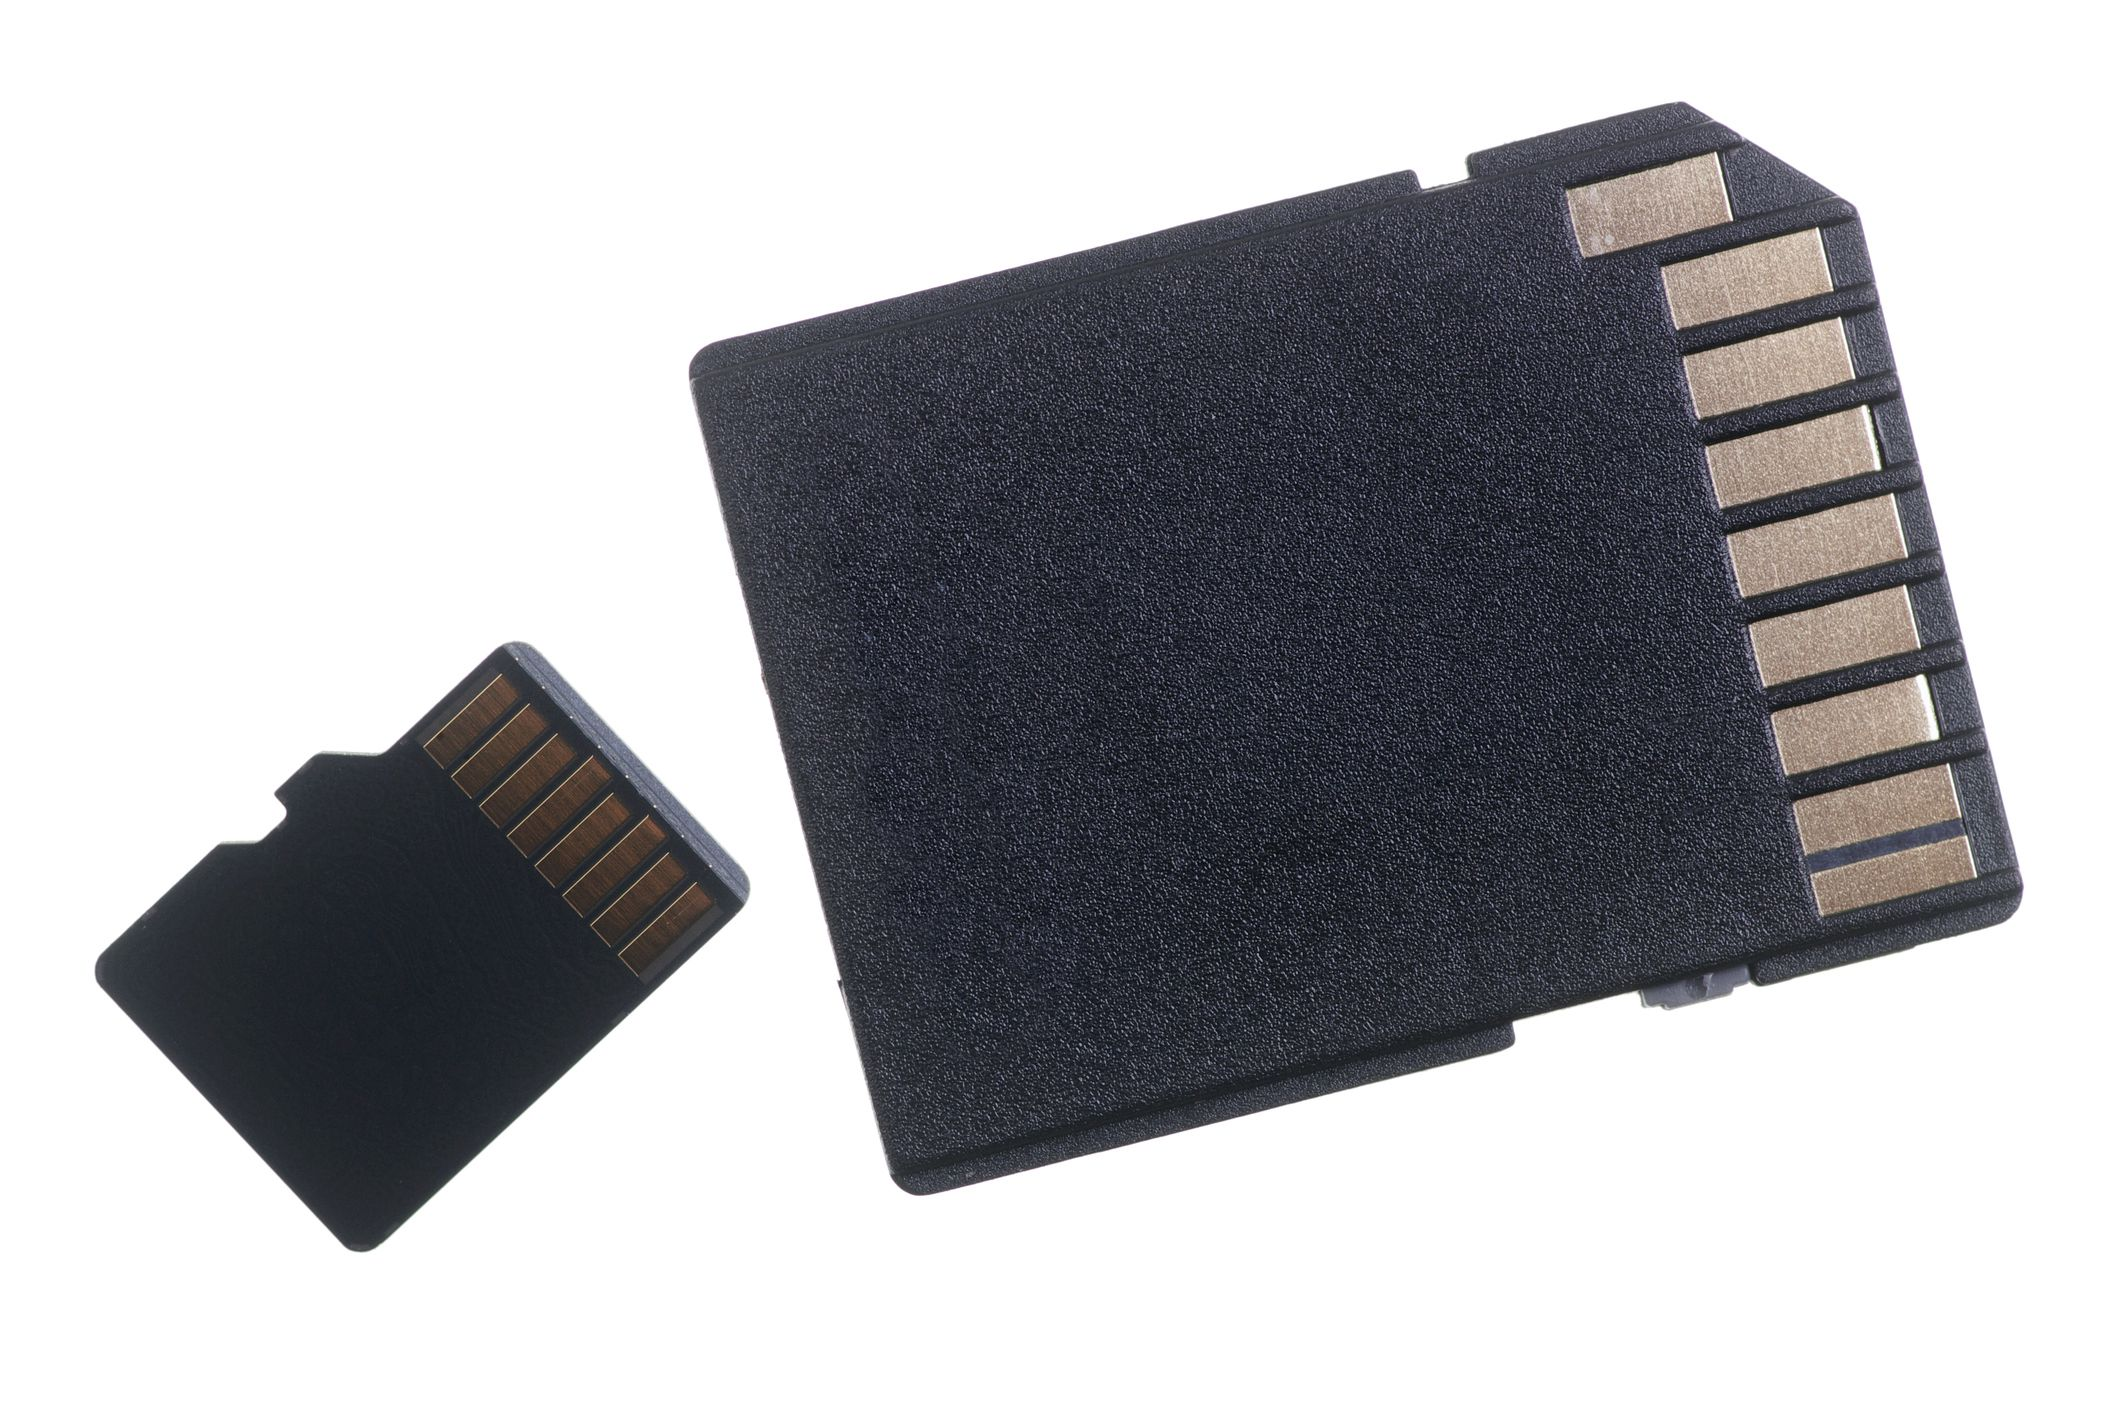 How to Troubleshoot and Fix microSD Card Problems